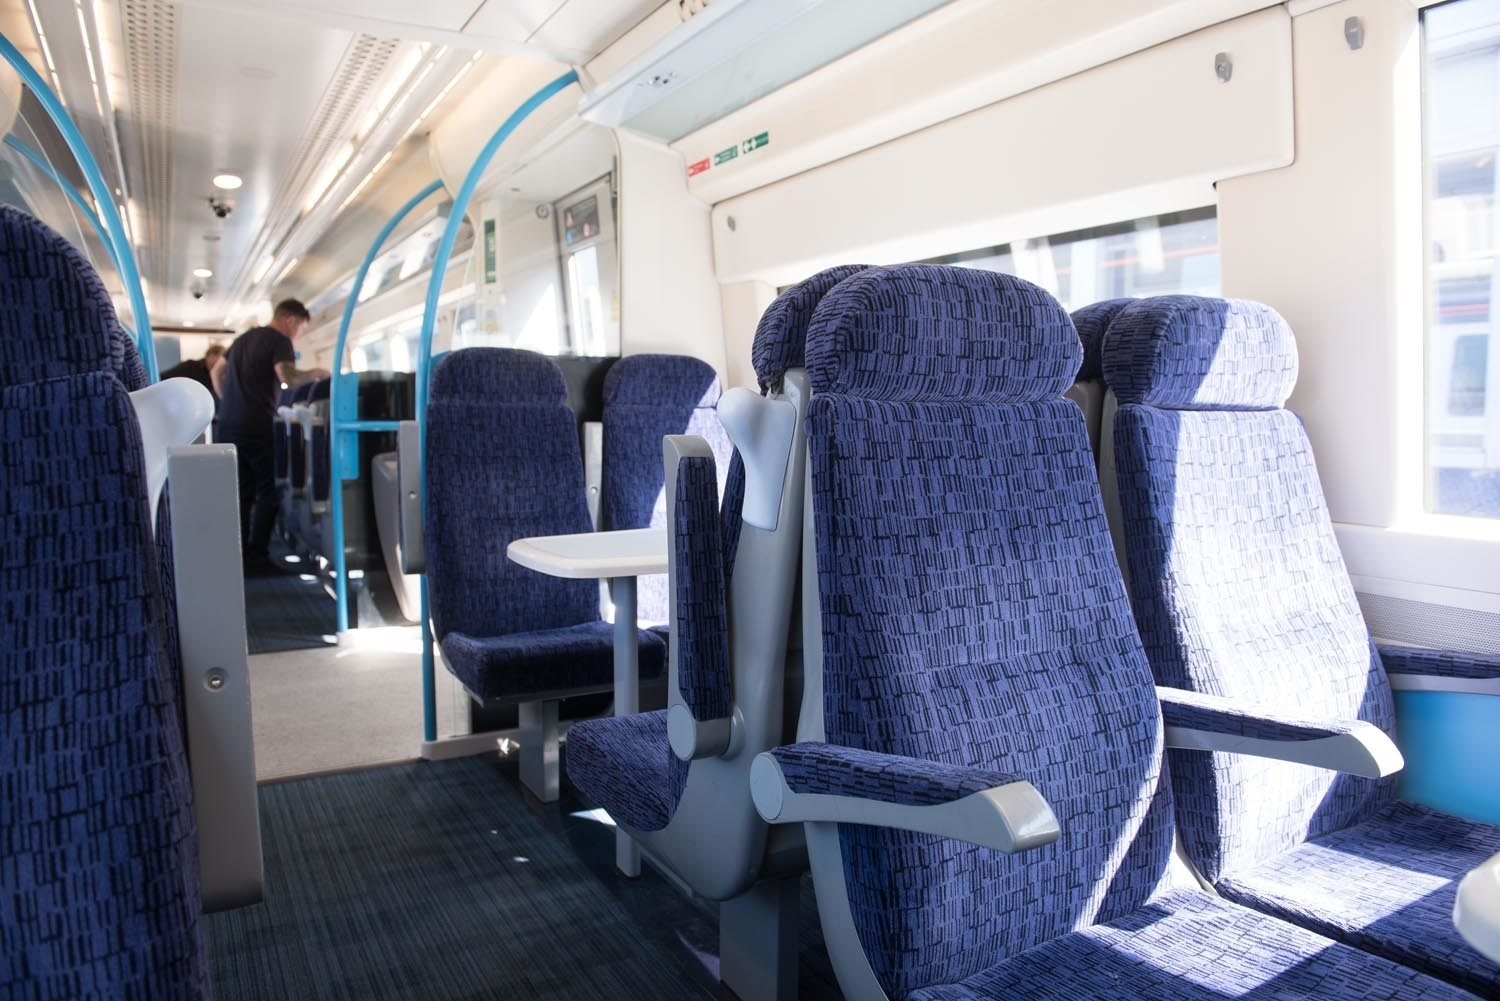 Southeastern completes £30m upgrade to a third of its trains